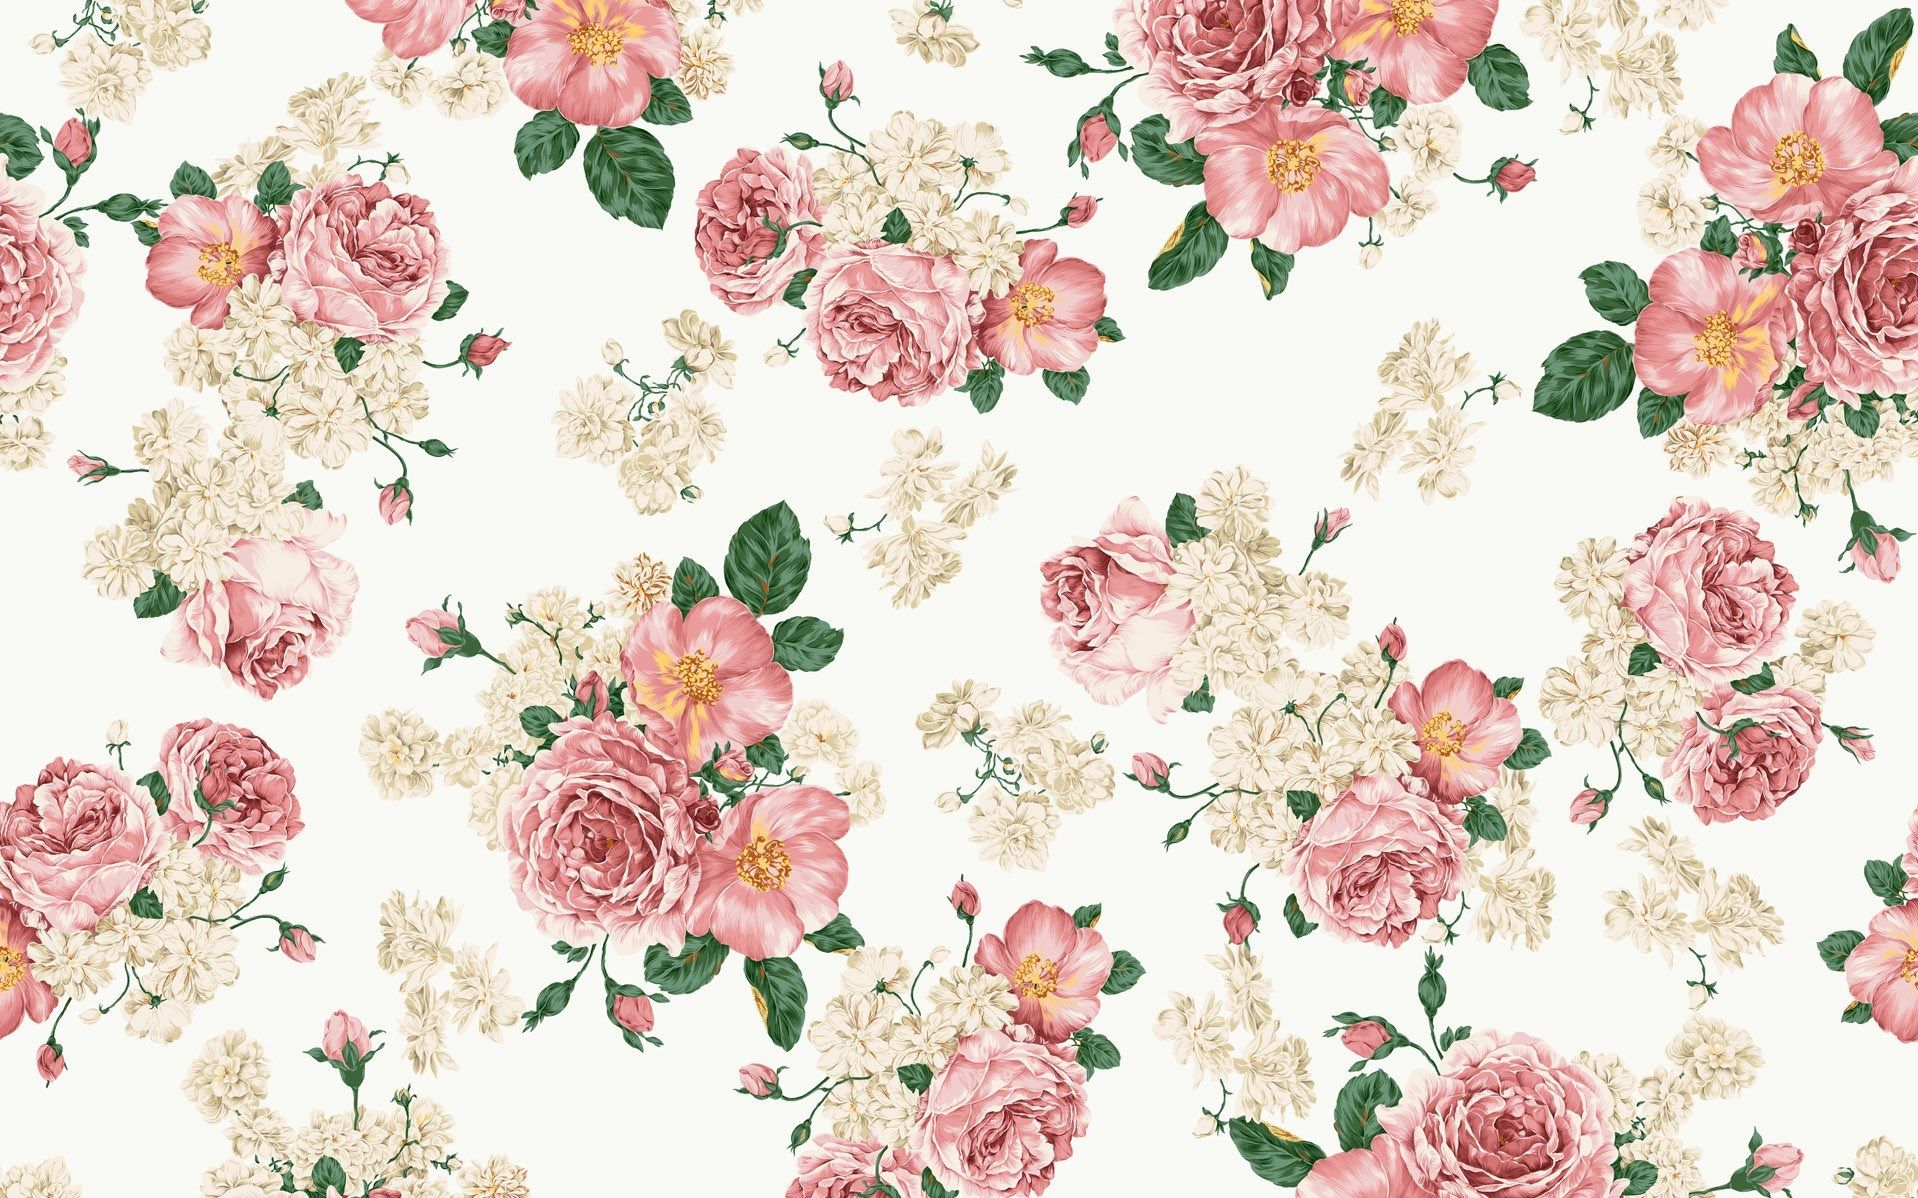 free desktop wallpaper downloads vintage flower 1349 kb duarte kingsman